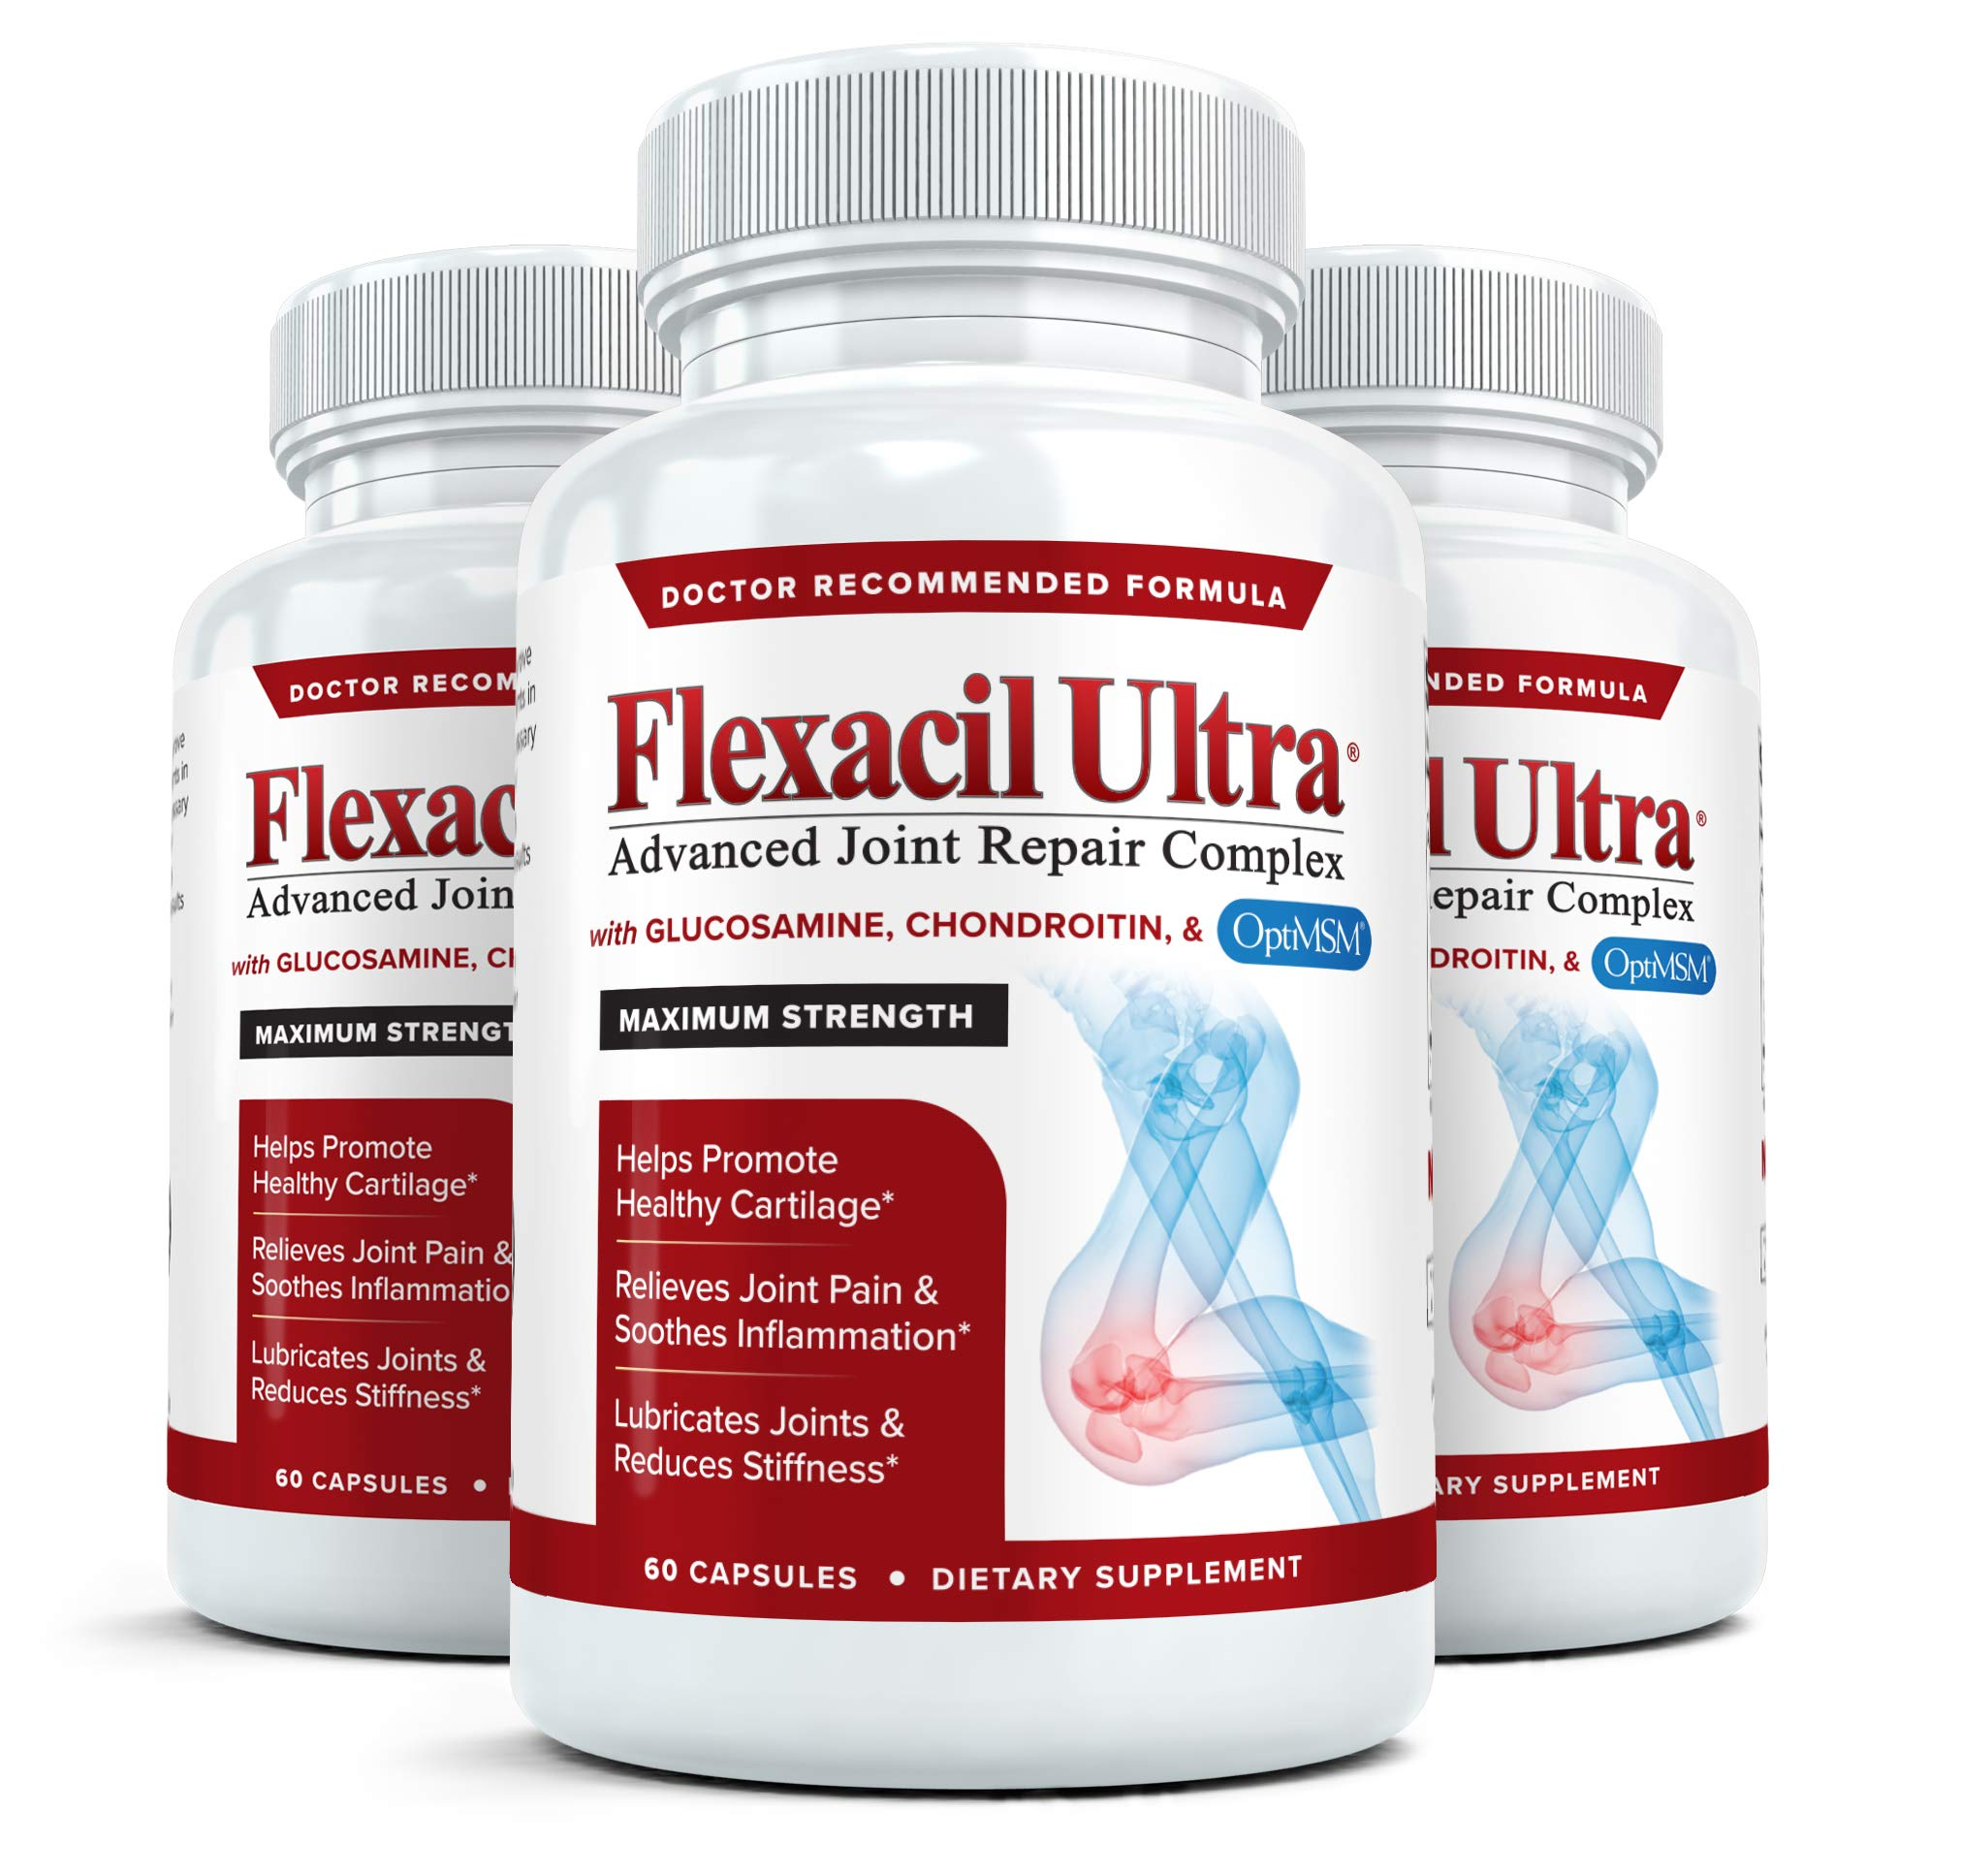 Flexacil Ultra - Maximum Strength Joint Pain Relief Supplement   Glucosamine, Chondroitin & MSM   Powerful Anti-Inflammatory, Promotes Healthy Hand, Back and Knee Function, 3 Bottles, 60 Capsules Each